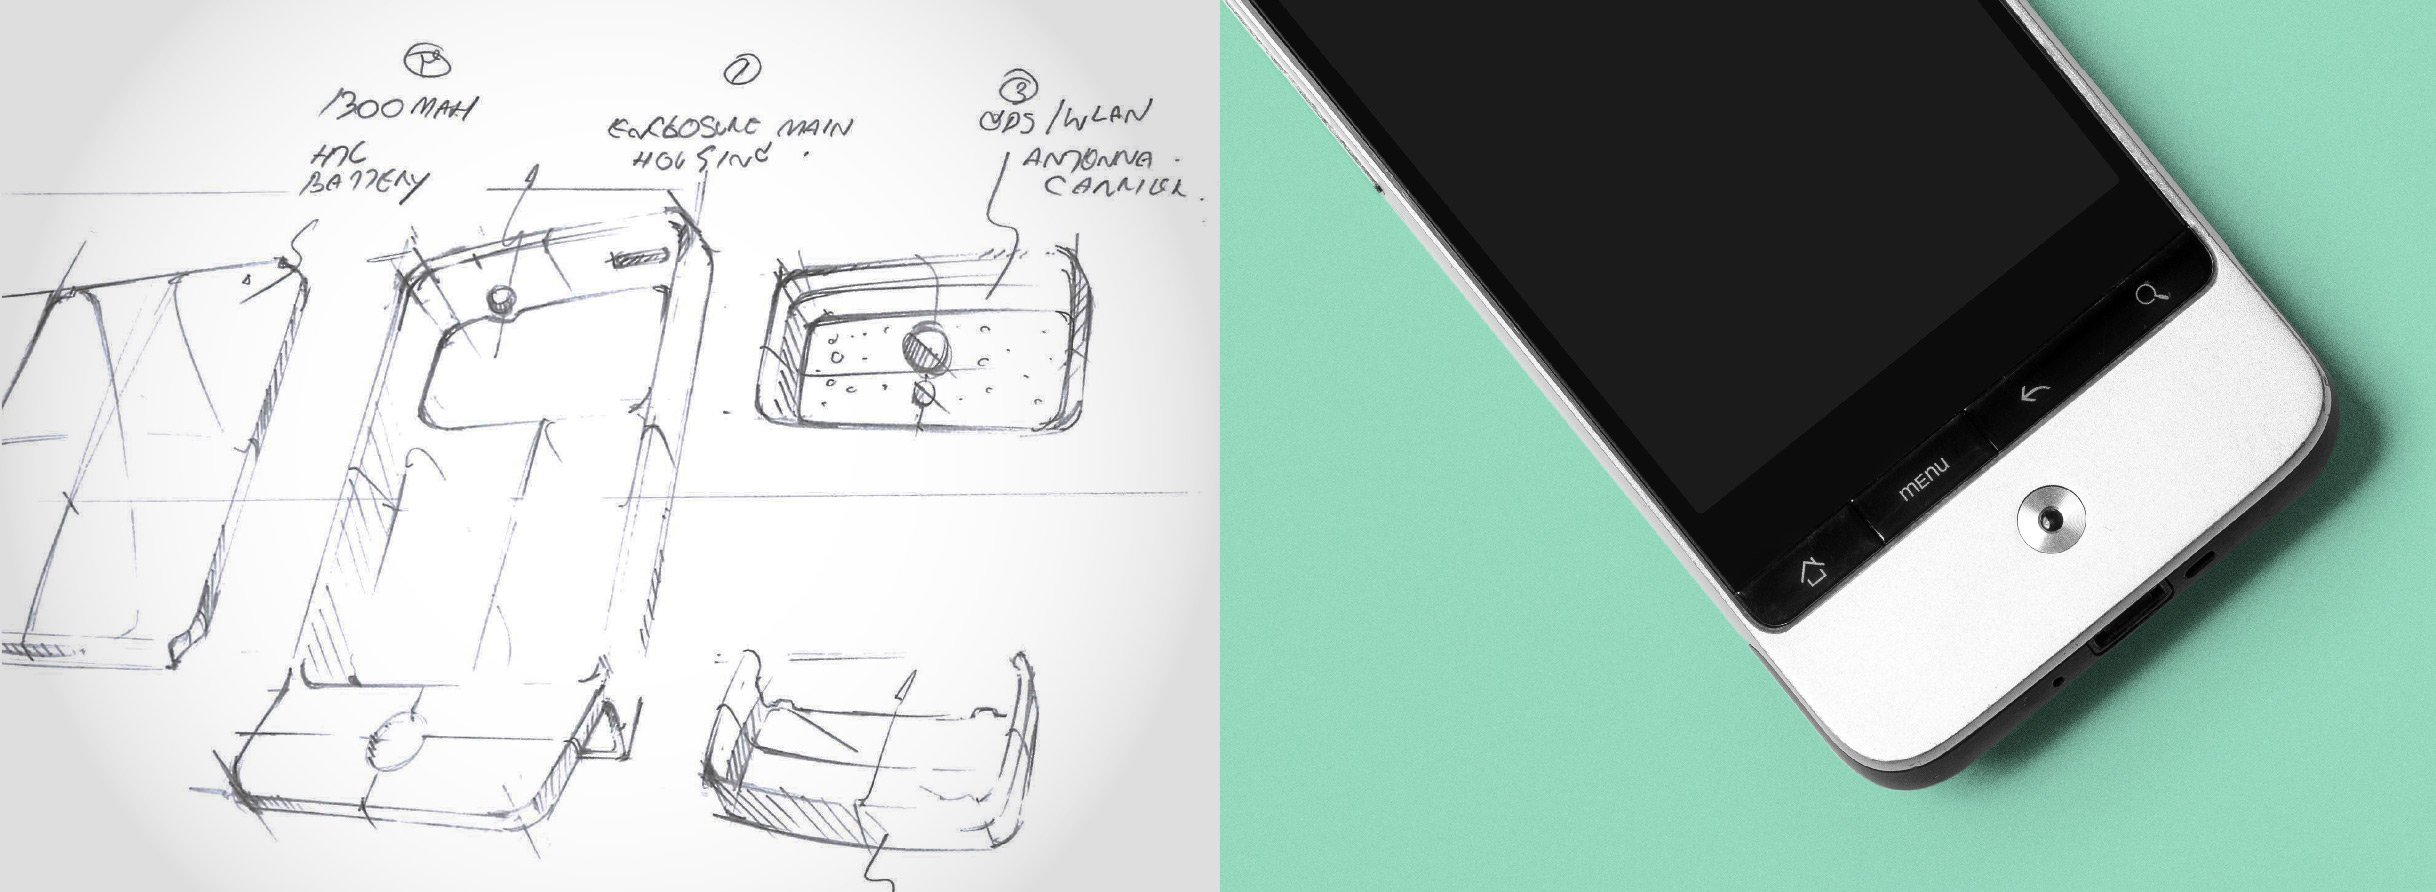 mobile_phone_design_sketching_02